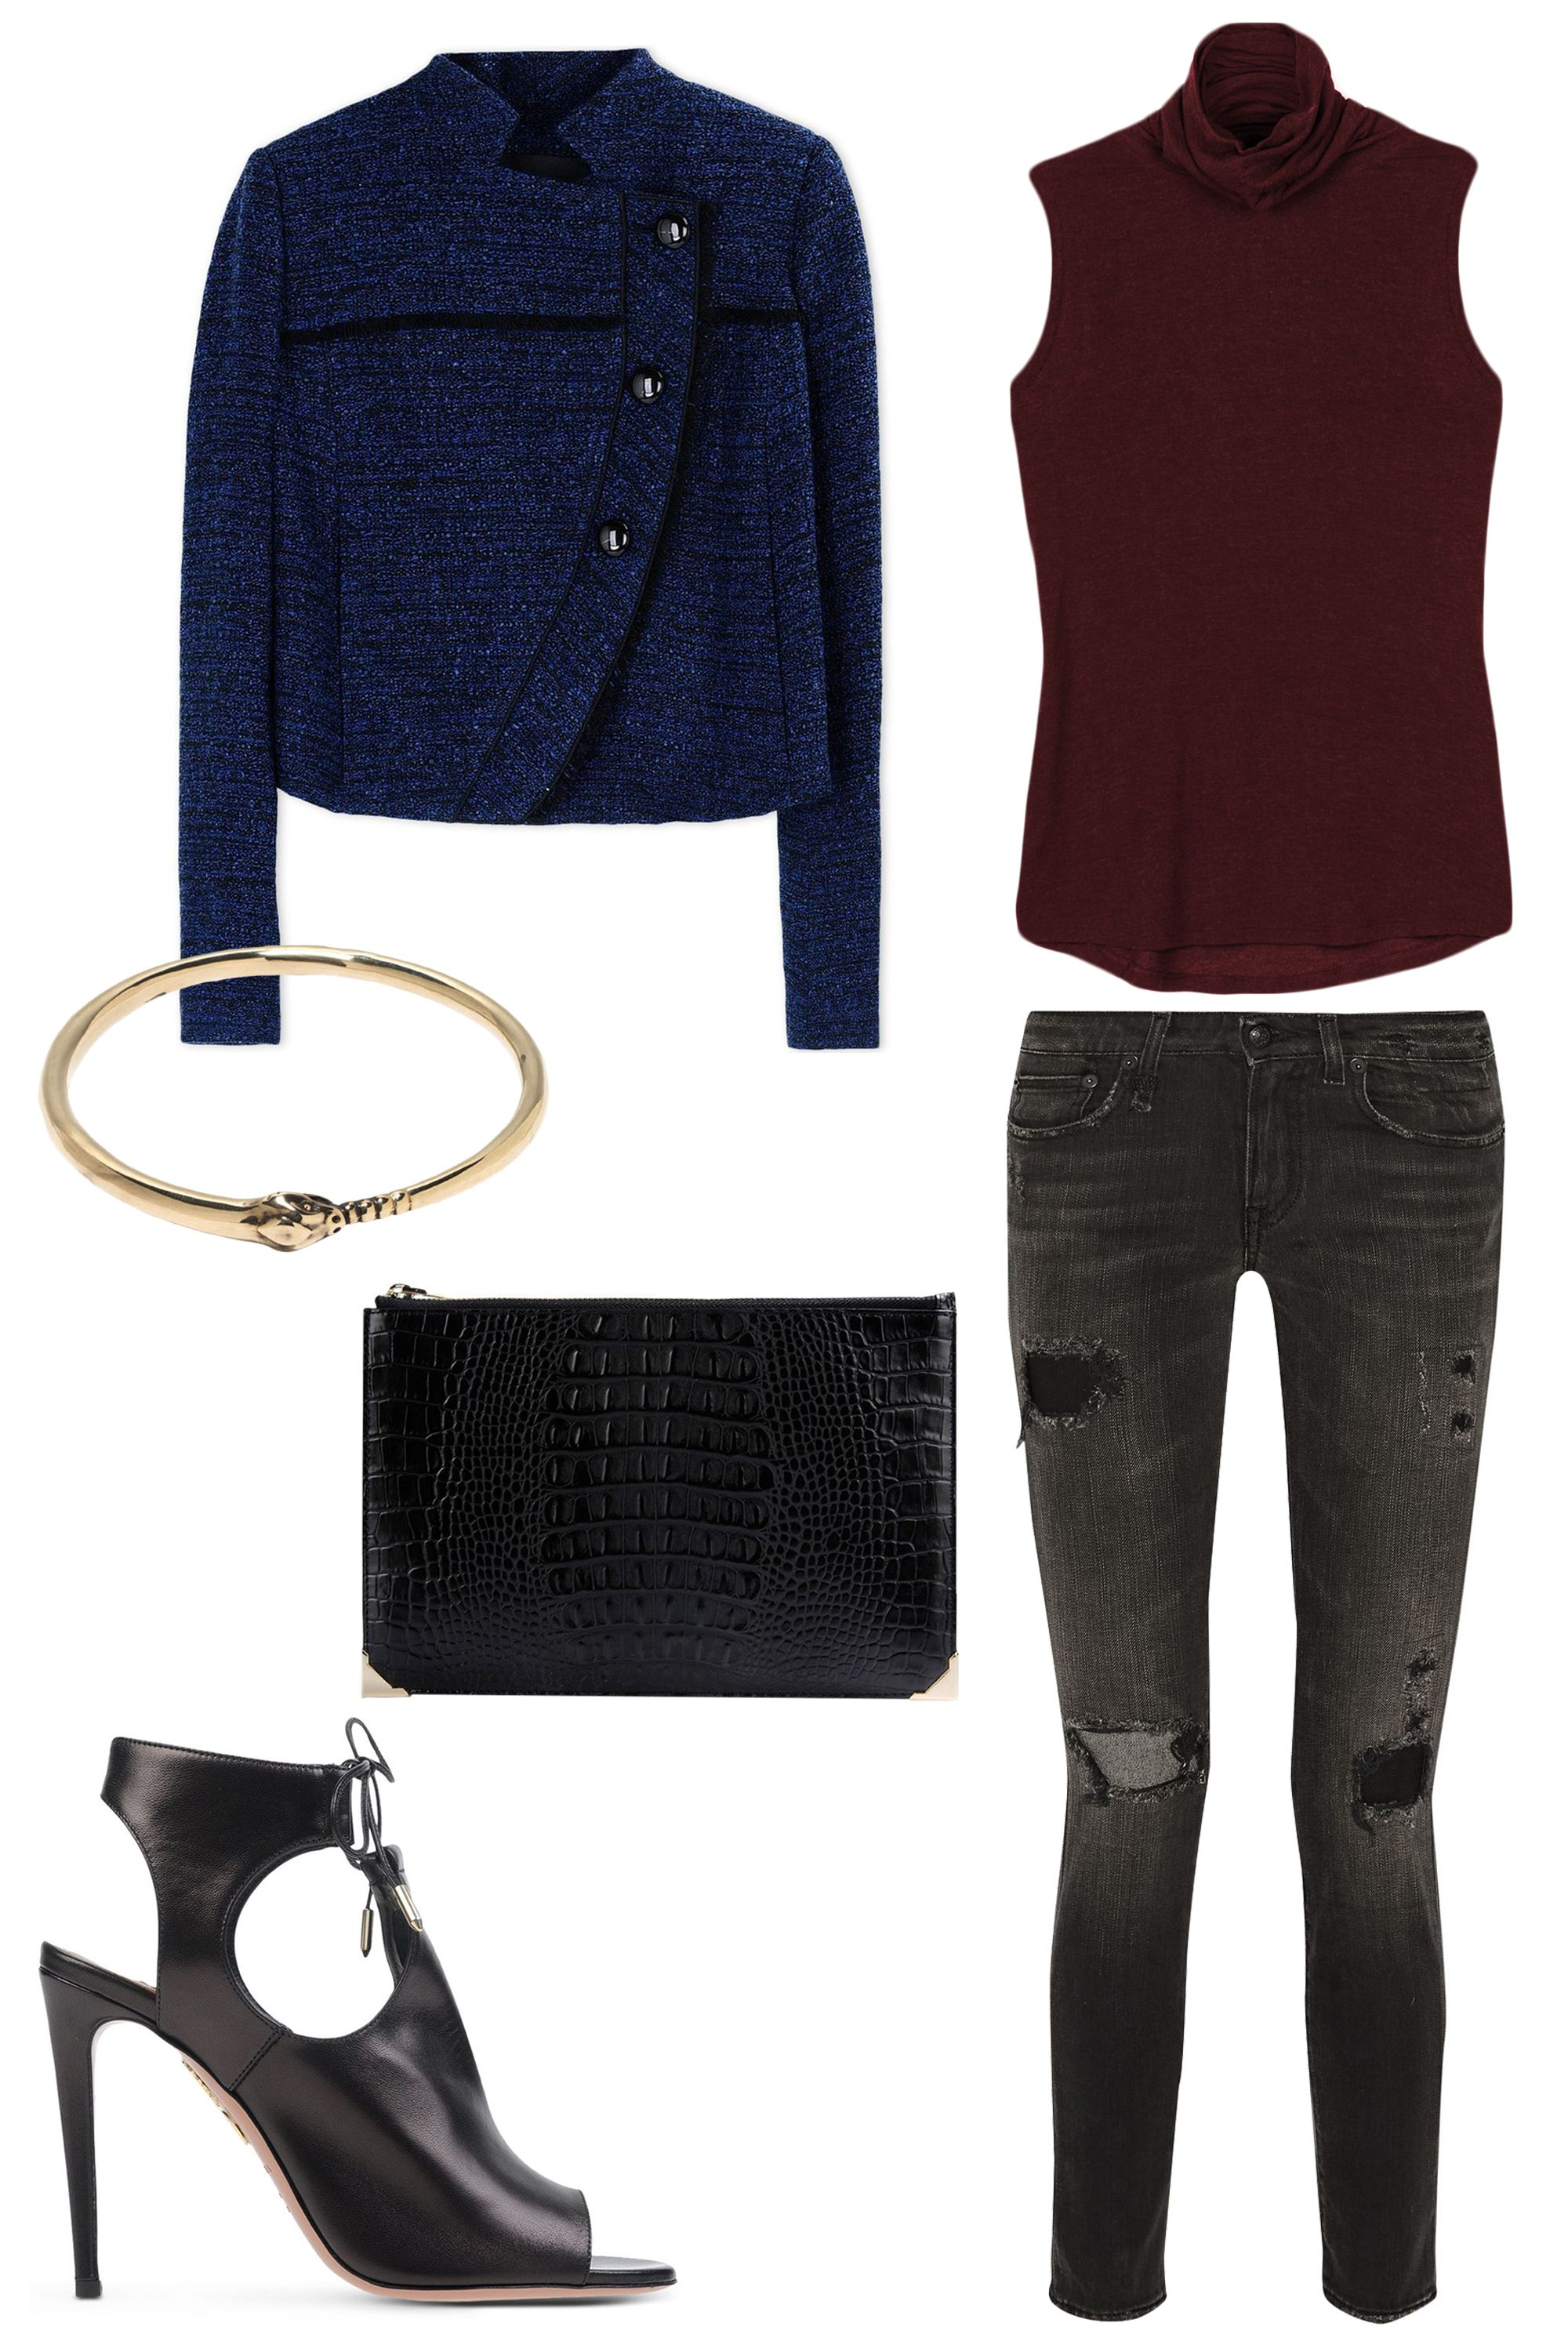 """<p>For a meet-up with friends, slip on a cropped jacket, distressed black jeans and sexy heels. A crocodile-embossed clutch dials up the glam. </p><p><strong>Kit and Ace</strong> Prevost Sleeveless Top, $78, <a href=""""https://ad.atdmt.com/c/go;p=11067200800298;a=11067200800296;ev.a=1;idfa=;idfa_lat=;aaid=;aaid_lat=;cache="""" target=""""_blank"""">kitandace.com</a>; <strong></strong> <strong>Proenza Schouler</strong> Asymmetrical Blue Tweed Jacket, $1,635, <a href=""""https://shop.harpersbazaar.com/designers/p/proenza-schouler/asymmetrical-blue-tweed-jacket-4668.html"""" target=""""_blank"""">shopBAZAAR.com</a>; <strong>R13</strong> Alison Distressed Mid-Rise Skinny Jeans, $425, <a href=""""http://www.net-a-porter.com/us/en/product/574646"""" target=""""_blank"""">net-a-porter.com</a>; <strong> Alexander Wang</strong> Prisma Croc-Embossed Clutch, $395, <a href=""""https://shop.harpersbazaar.com/designers/a/alexander-wang/prisma-croc-embossed-clutch-5189.html"""" target=""""_blank"""">shopBAZAAR.com;</a> <strong>Aquazzura </strong>Black Leather Lace-Up Cutout Sandal, $695, <a href=""""https://shop.harpersbazaar.com/designers/a/aquazzura/black-leather-lace-up-cutout-sandal-4973.html"""" target=""""_blank"""">shopBAZAAR.com</a>; <strong>Pamela Love</strong> Ouroboros Bangle, $130, <a href=""""https://shop.harpersbazaar.com/designers/pamela-love/ouroboros-bangle/"""" target=""""_blank"""">shopBAZAAR.com</a></p>"""